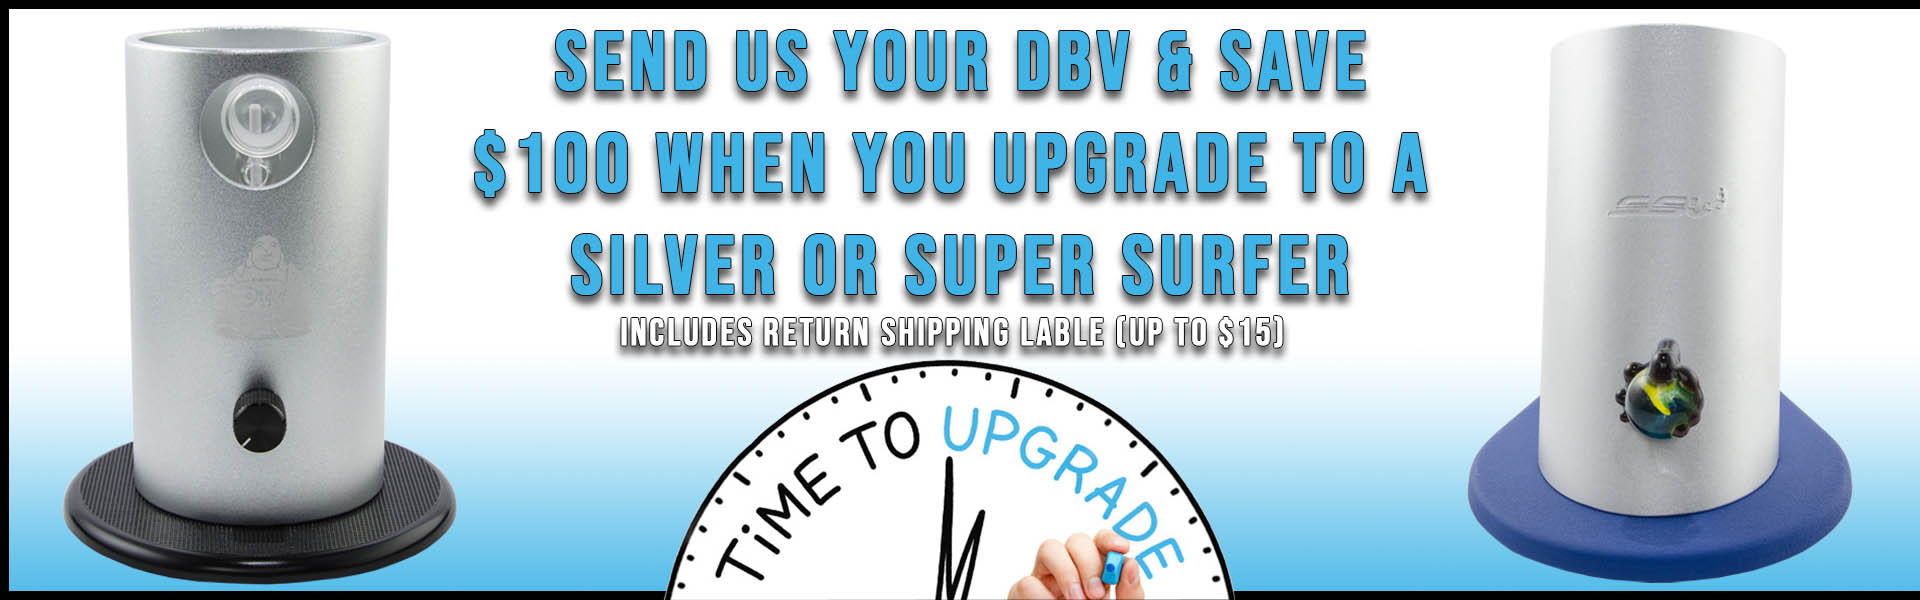 up-grade-from-dbv-to-ssv.jpg